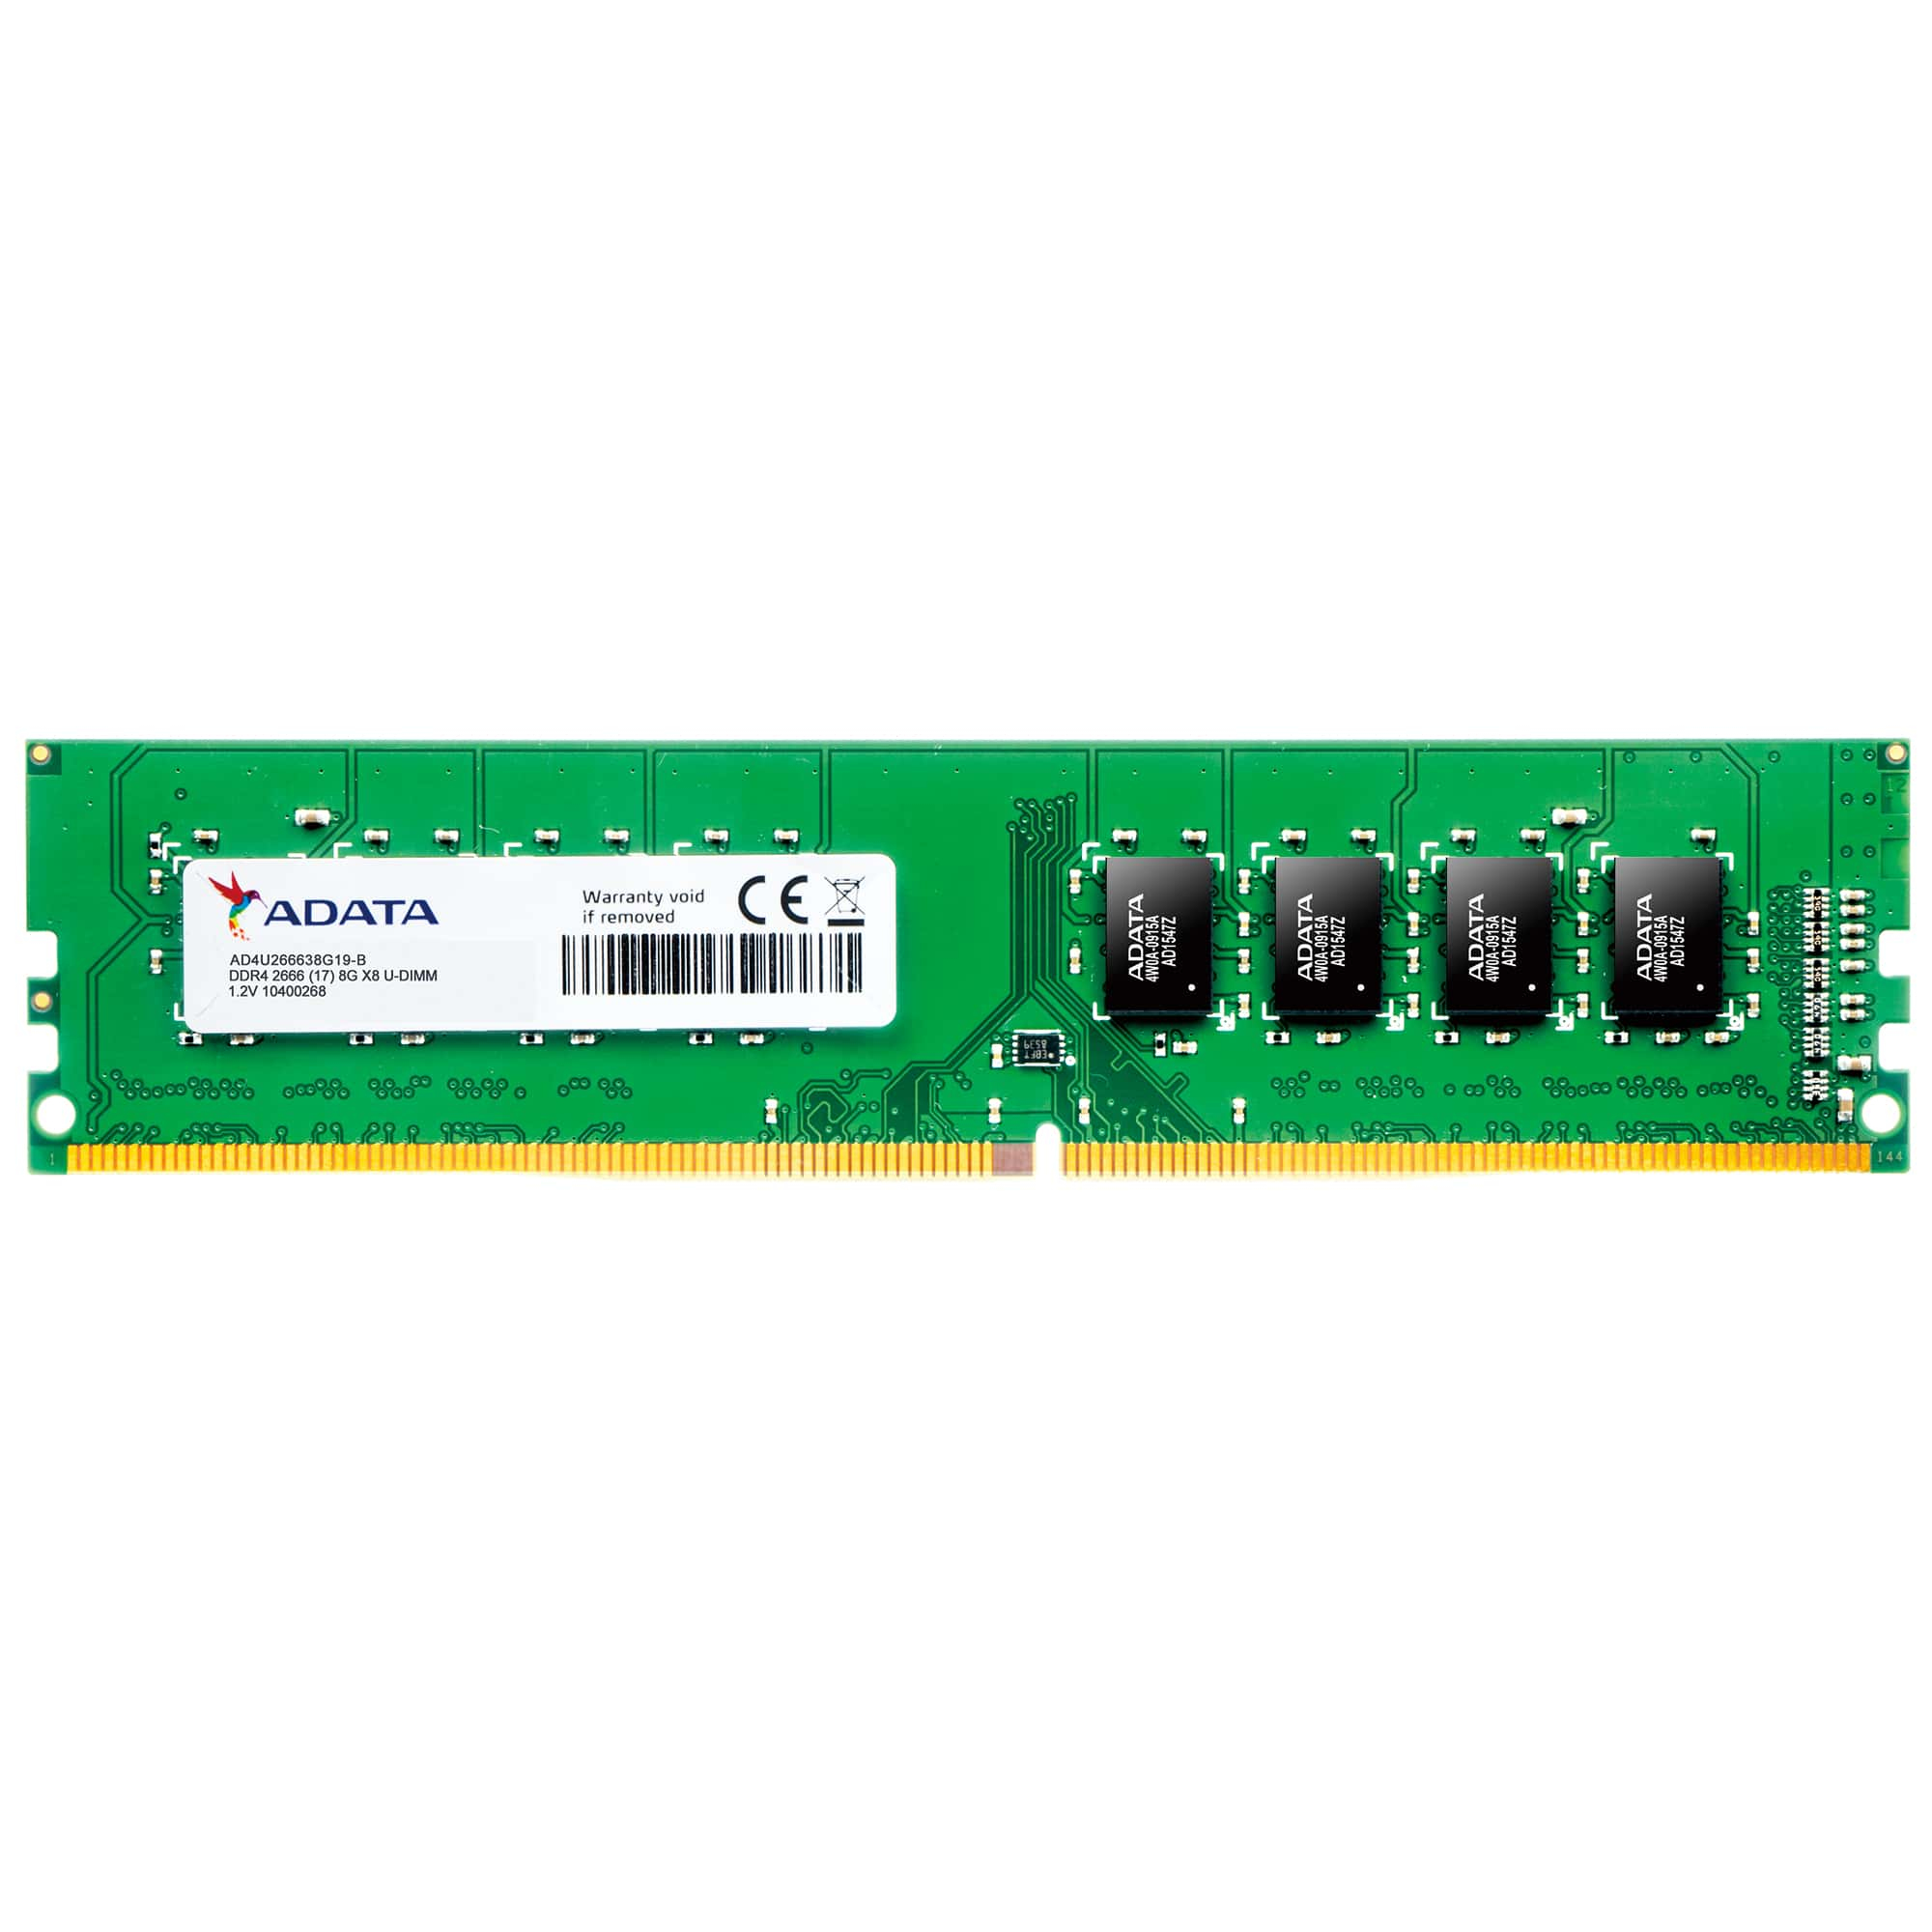 Premier Series - Ddr4 - 8 GB - DIMM 288-pin - 2666 MHz / Pc4-21300 - Cl19 - 1.2 V - Unbuffered